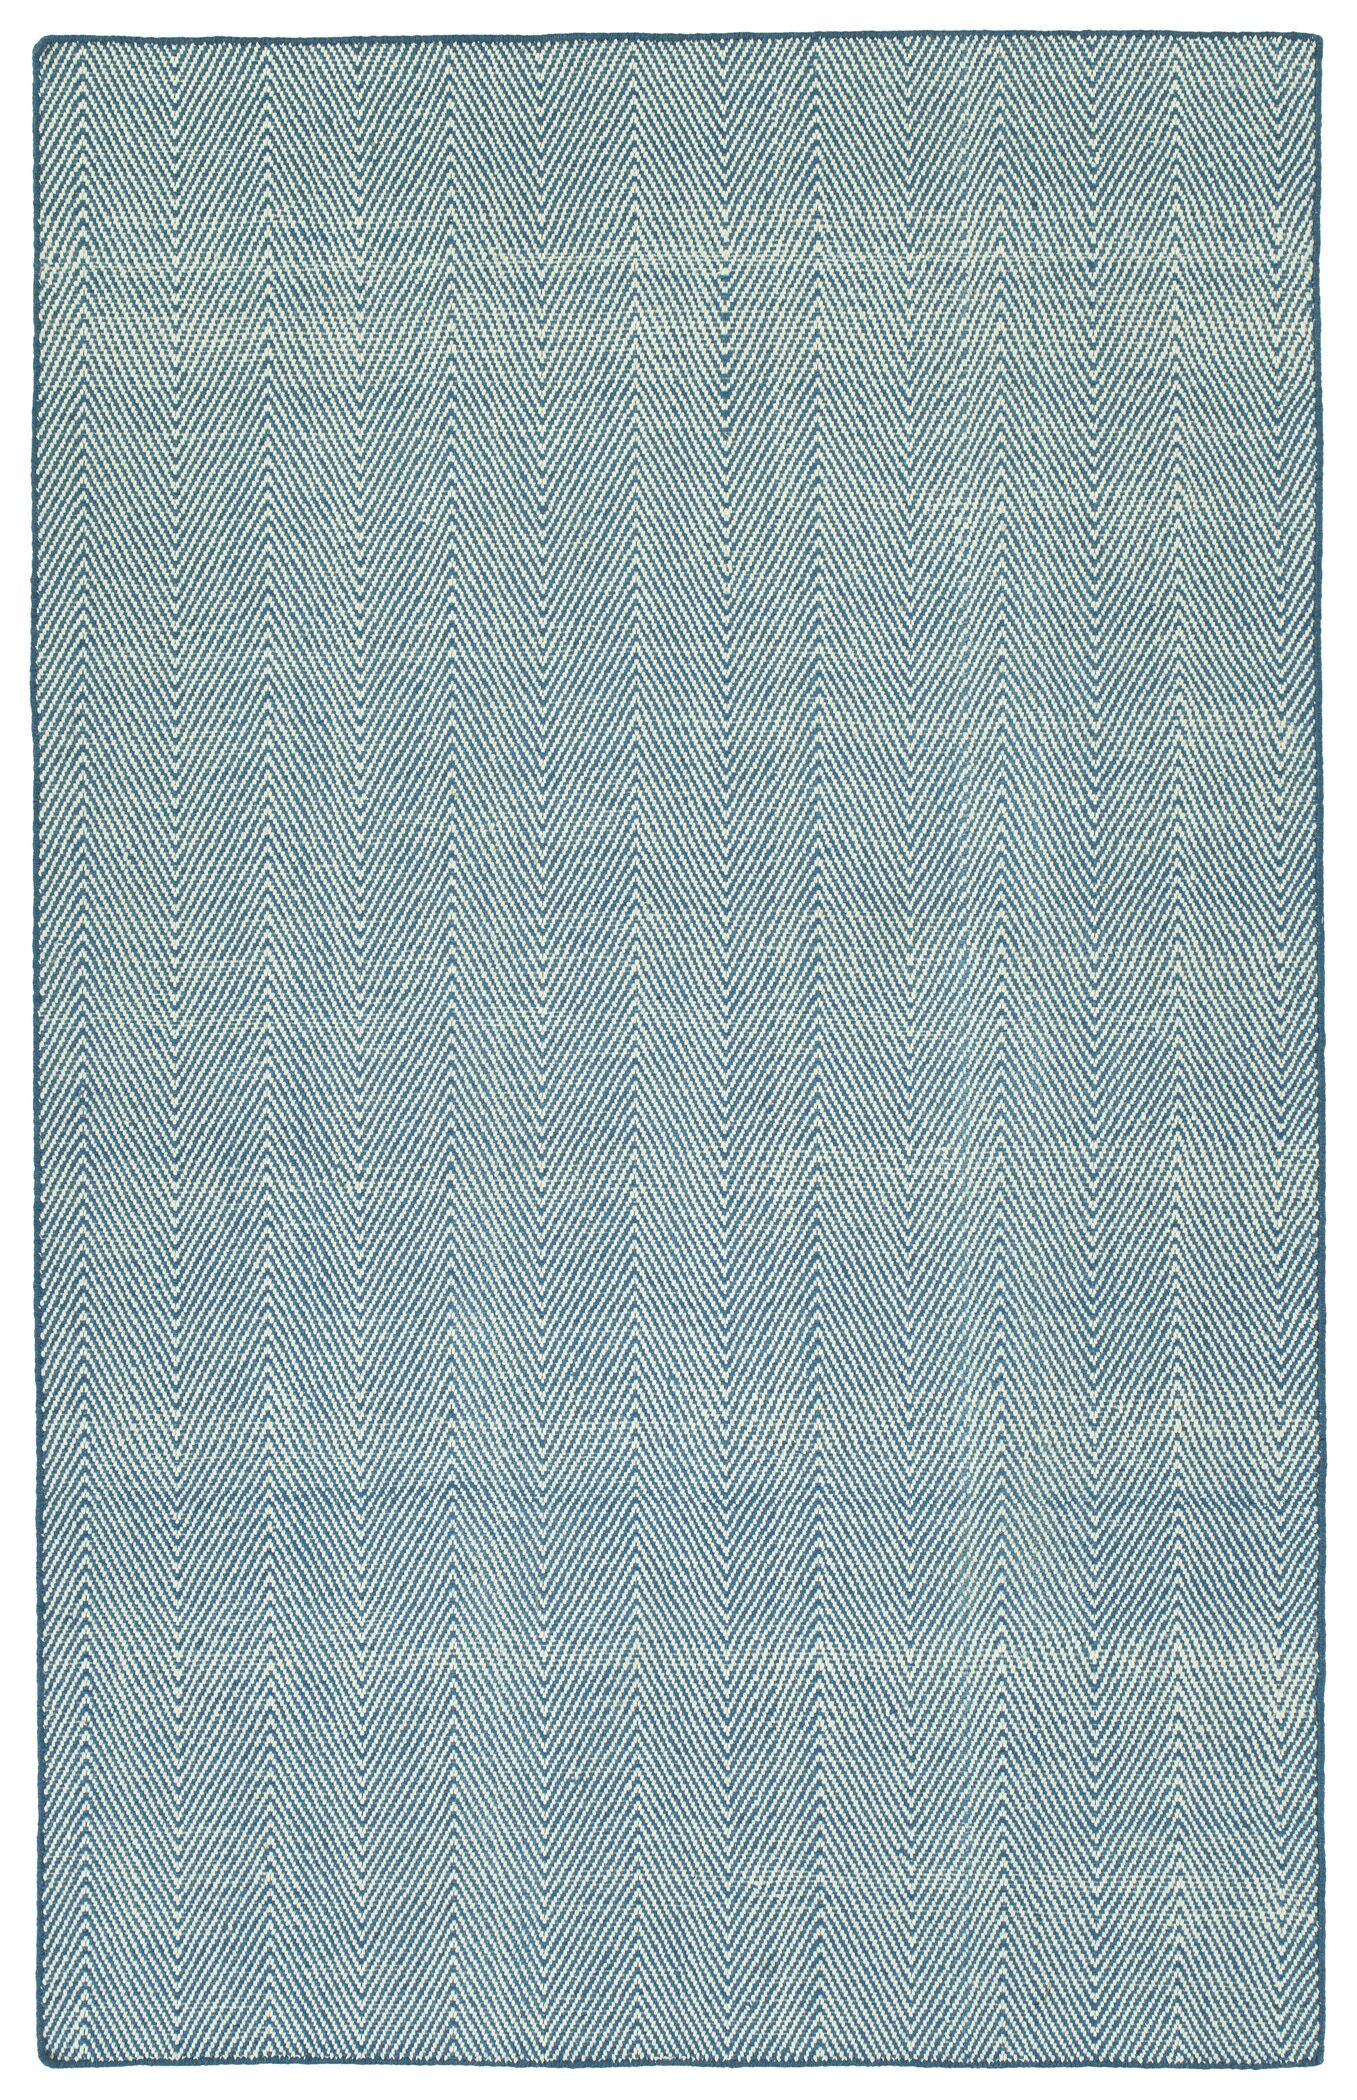 Buell Hand Woven Denim Indoor/Outdoor Area Rug Size: Rectangle 8' x 10'